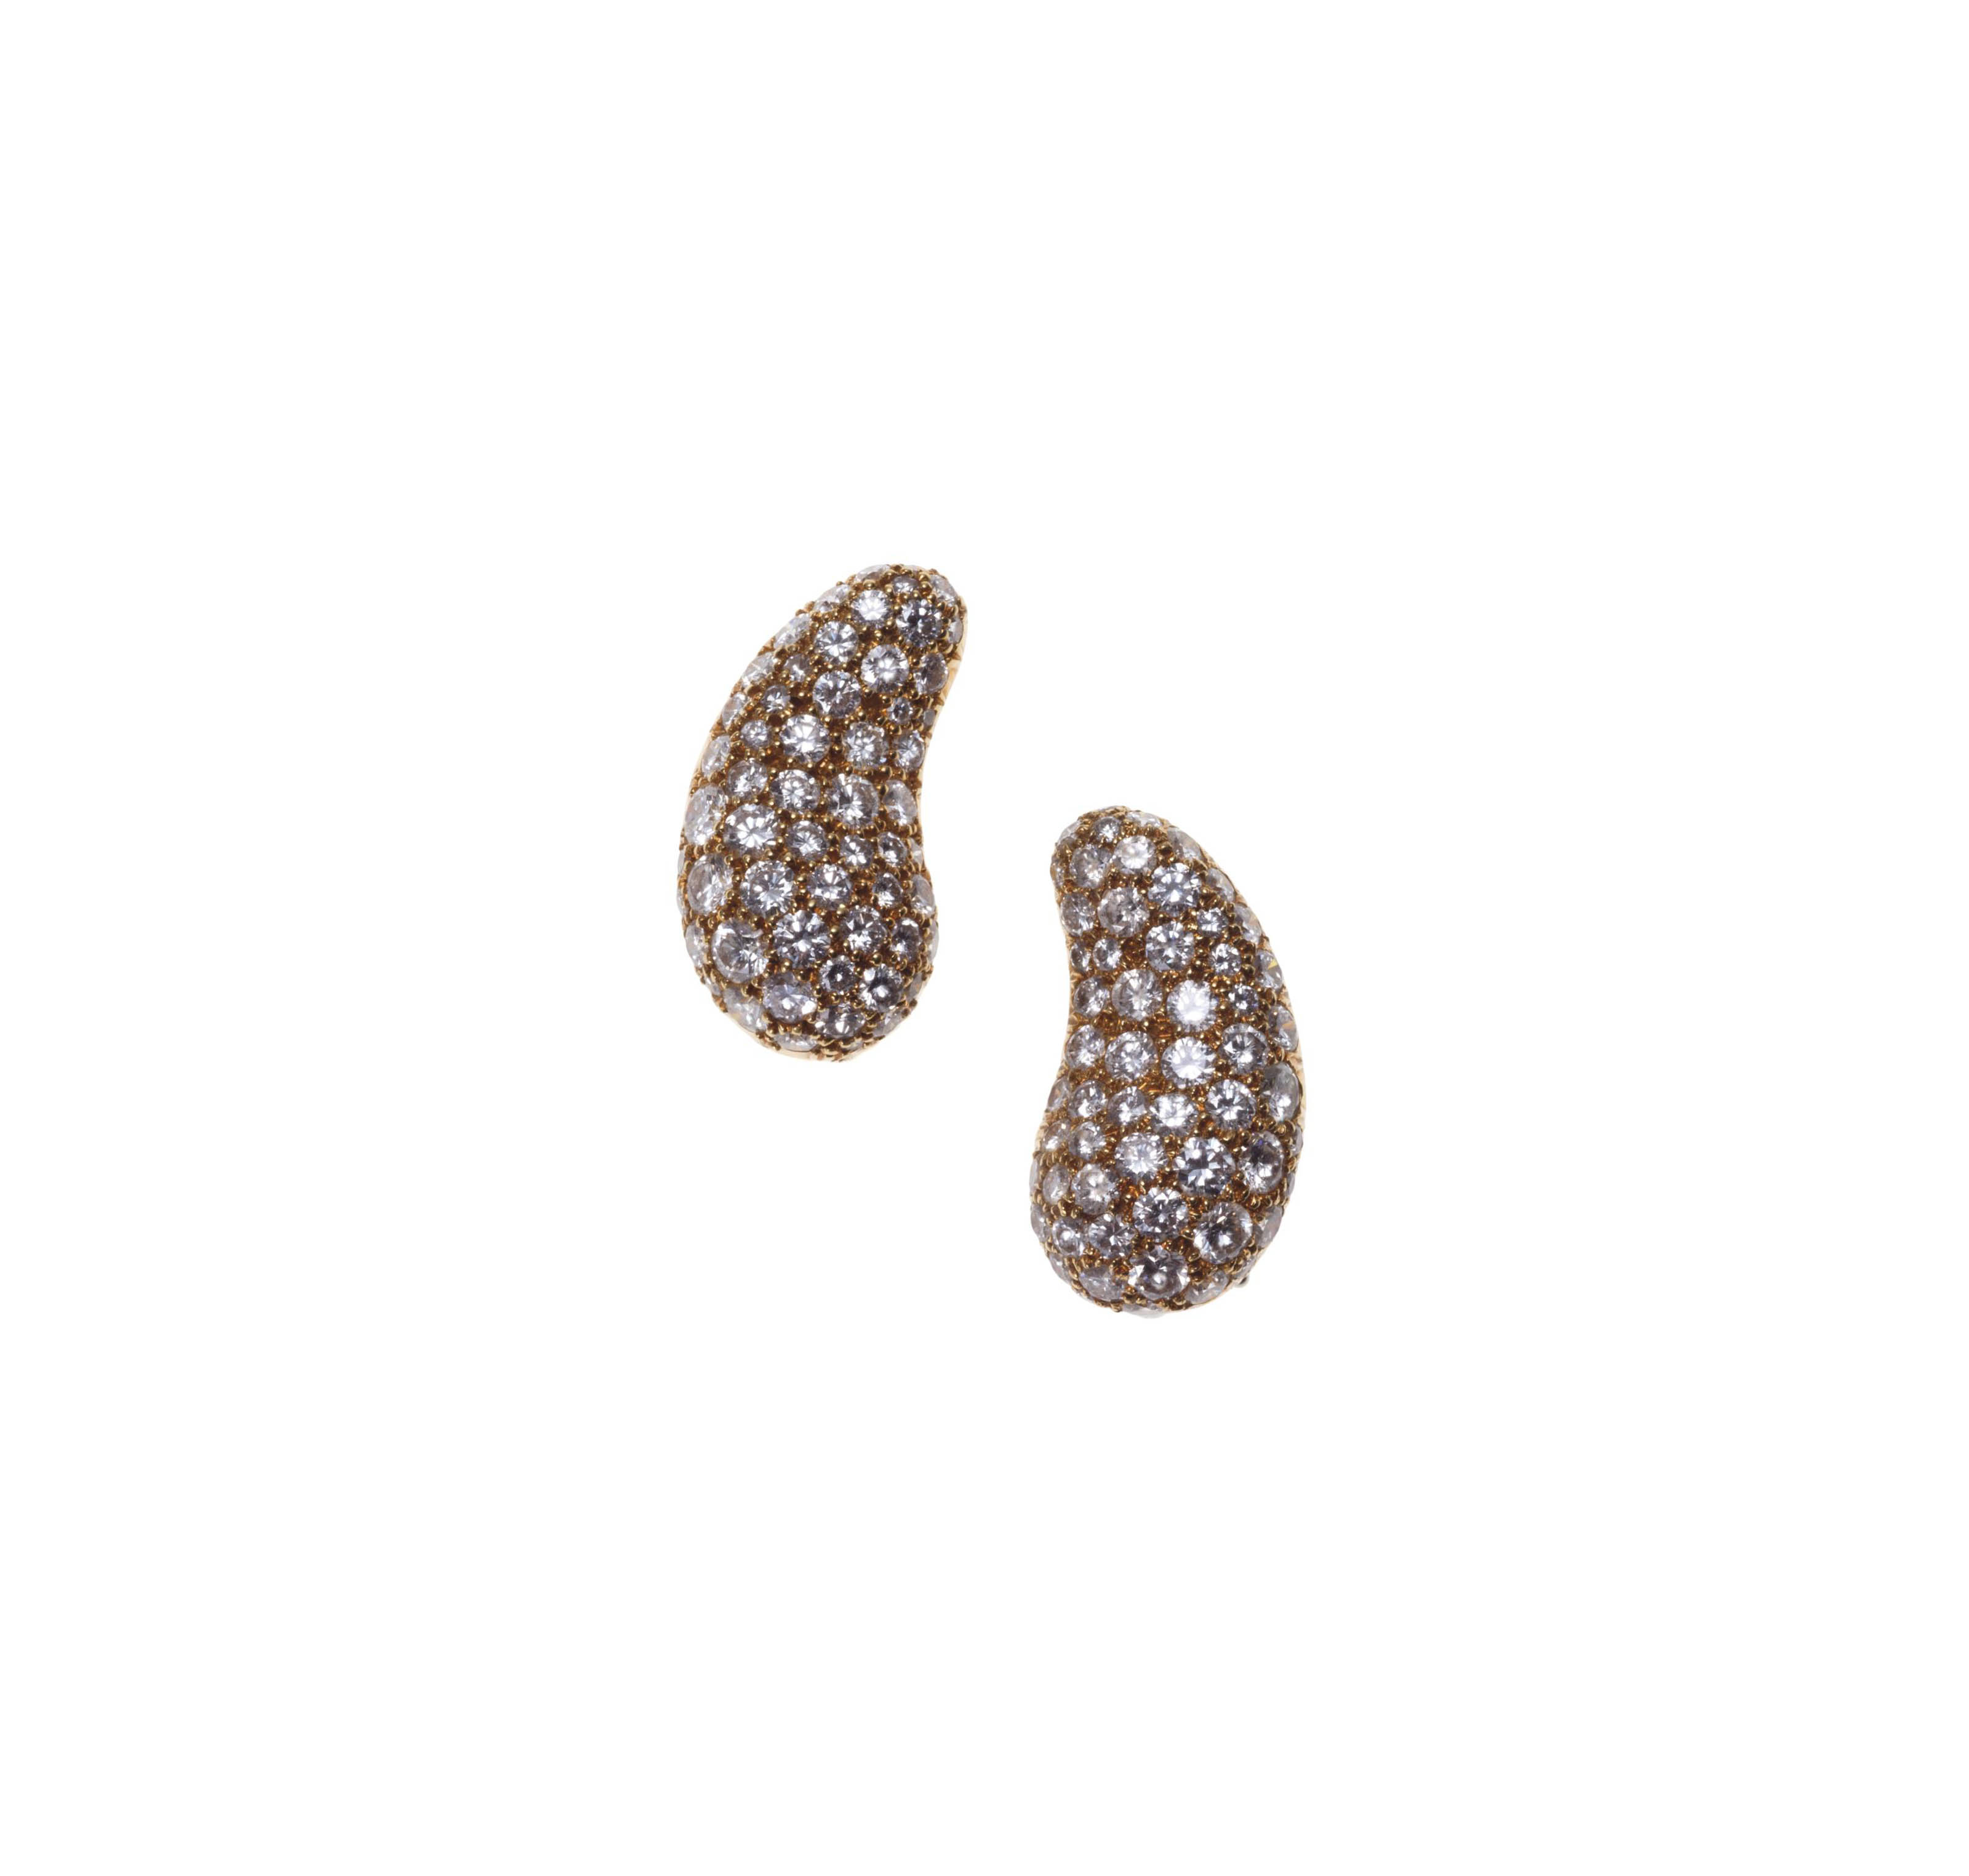 A PAIR OF DIAMOND AND GOLD EAR CLIPS, BY ELSA PERETTI, TIFFANY & CO.